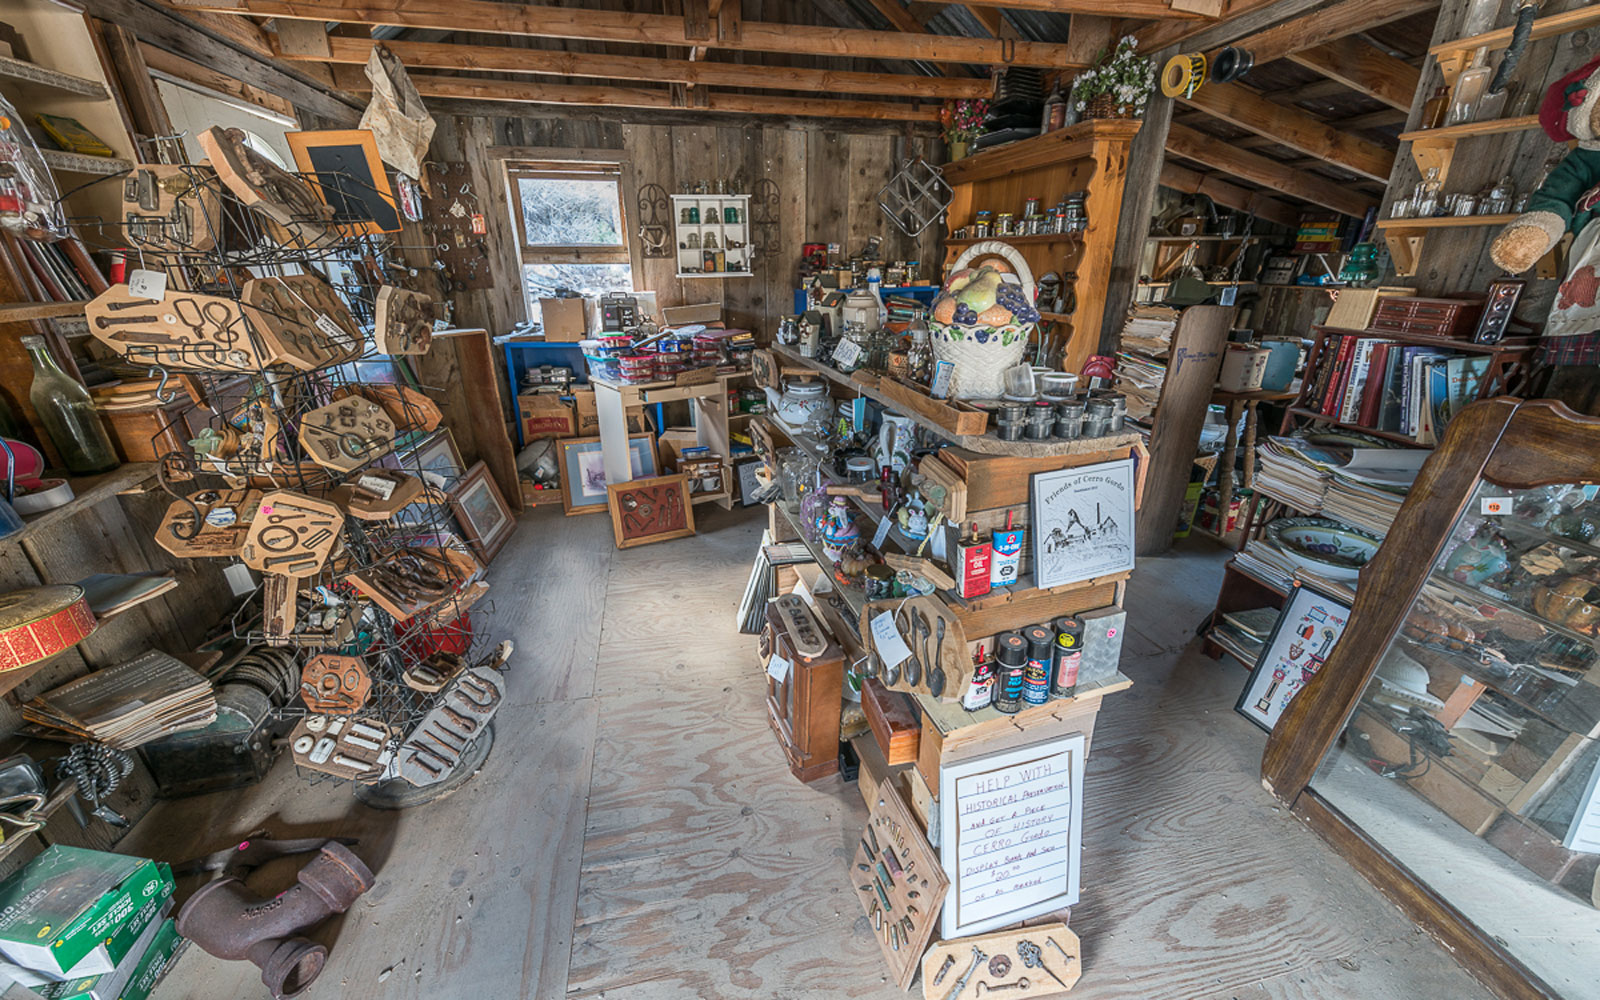 Artifacts inside the museum of the historic ghost town of Cerro Gordo, California.